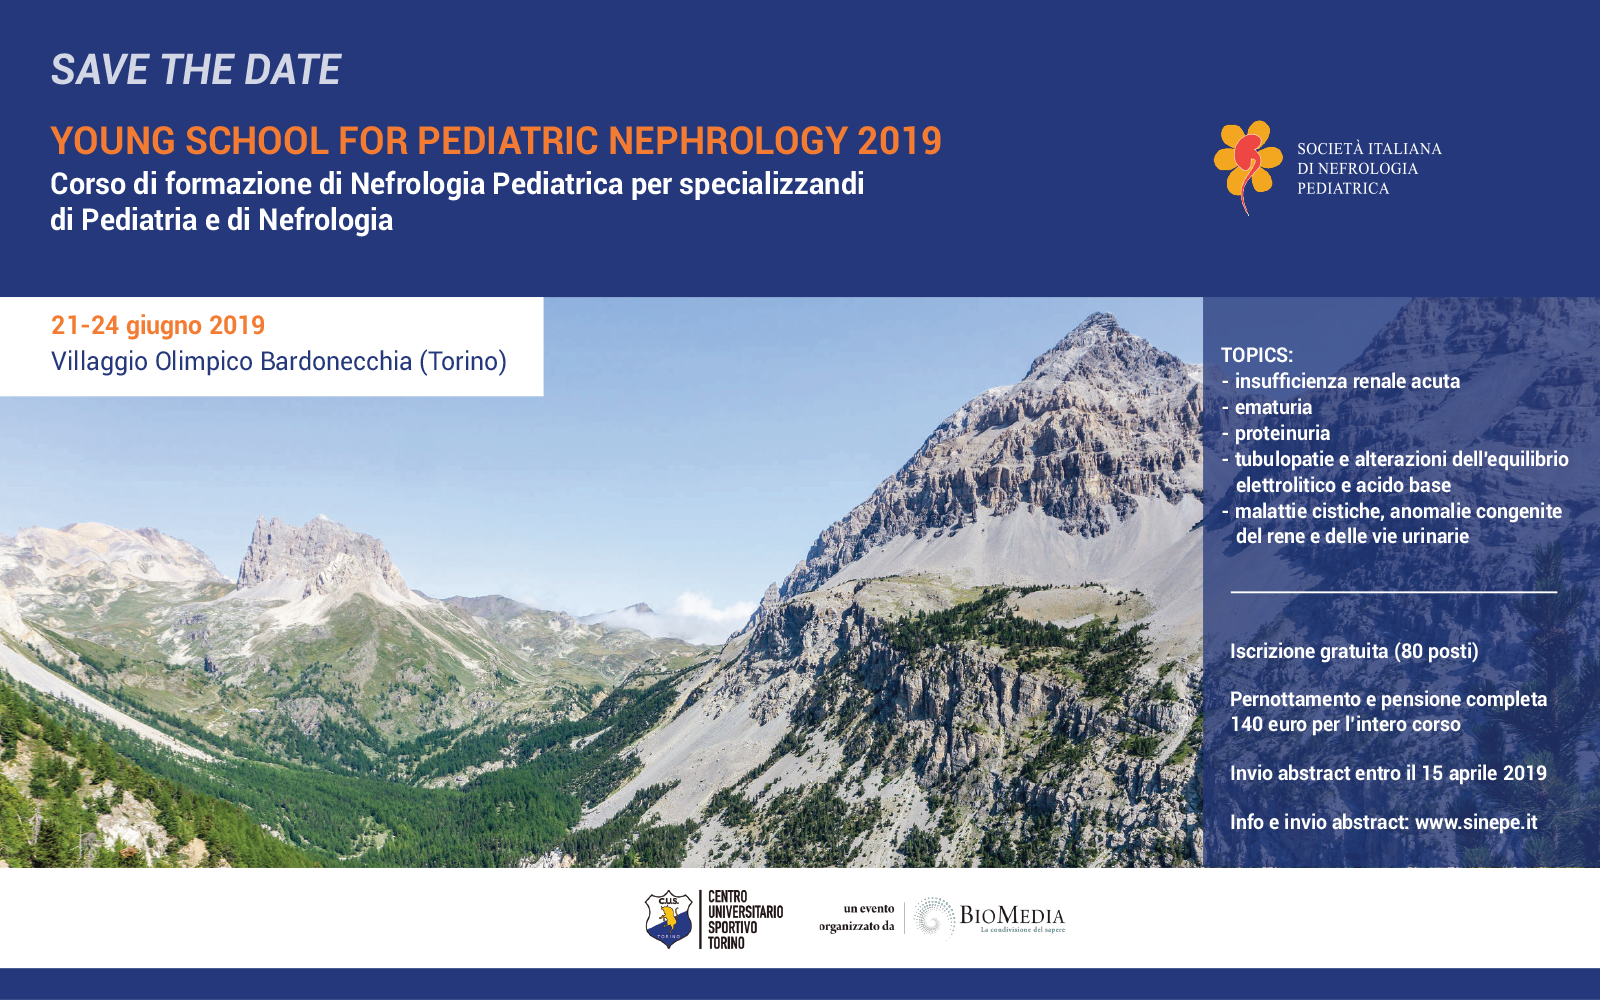 Young School for pediatric nephrology 2019